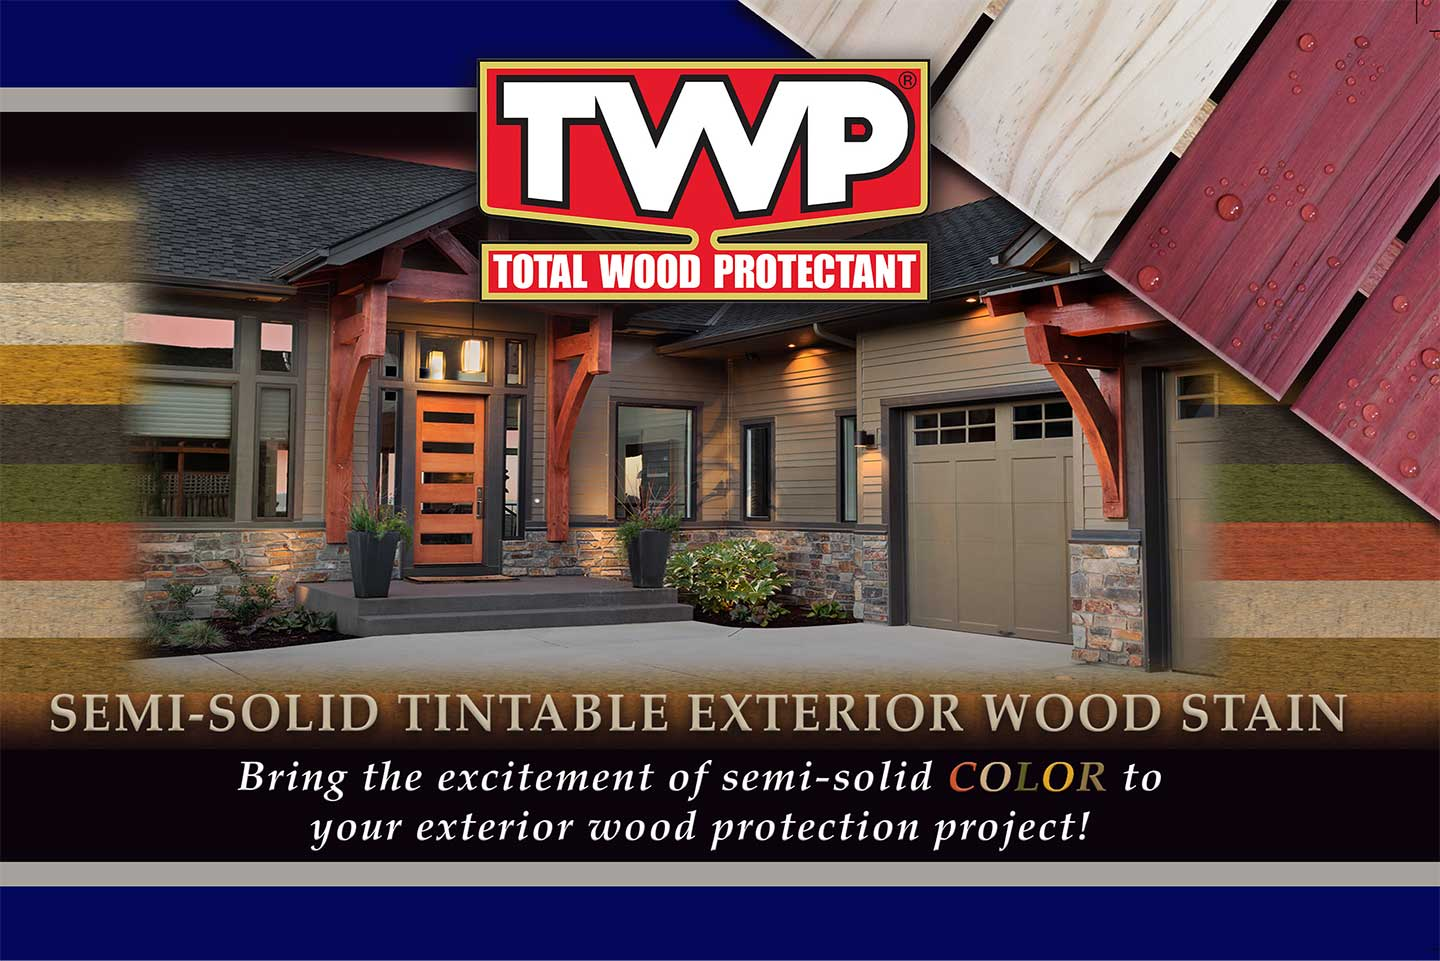 TWP Semi Solid Wood Deck Stain